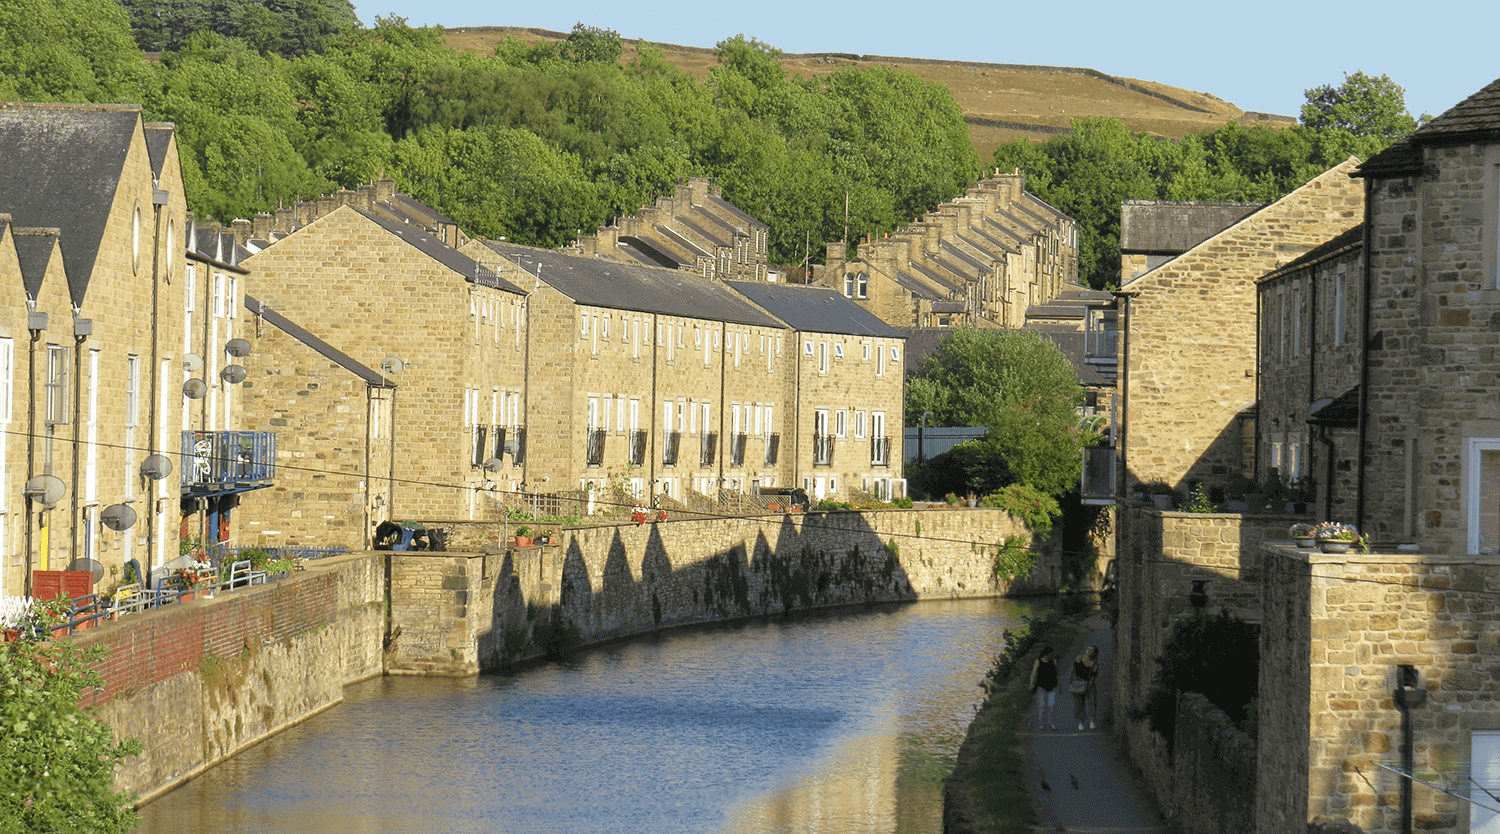 Canal Houses at Skipton